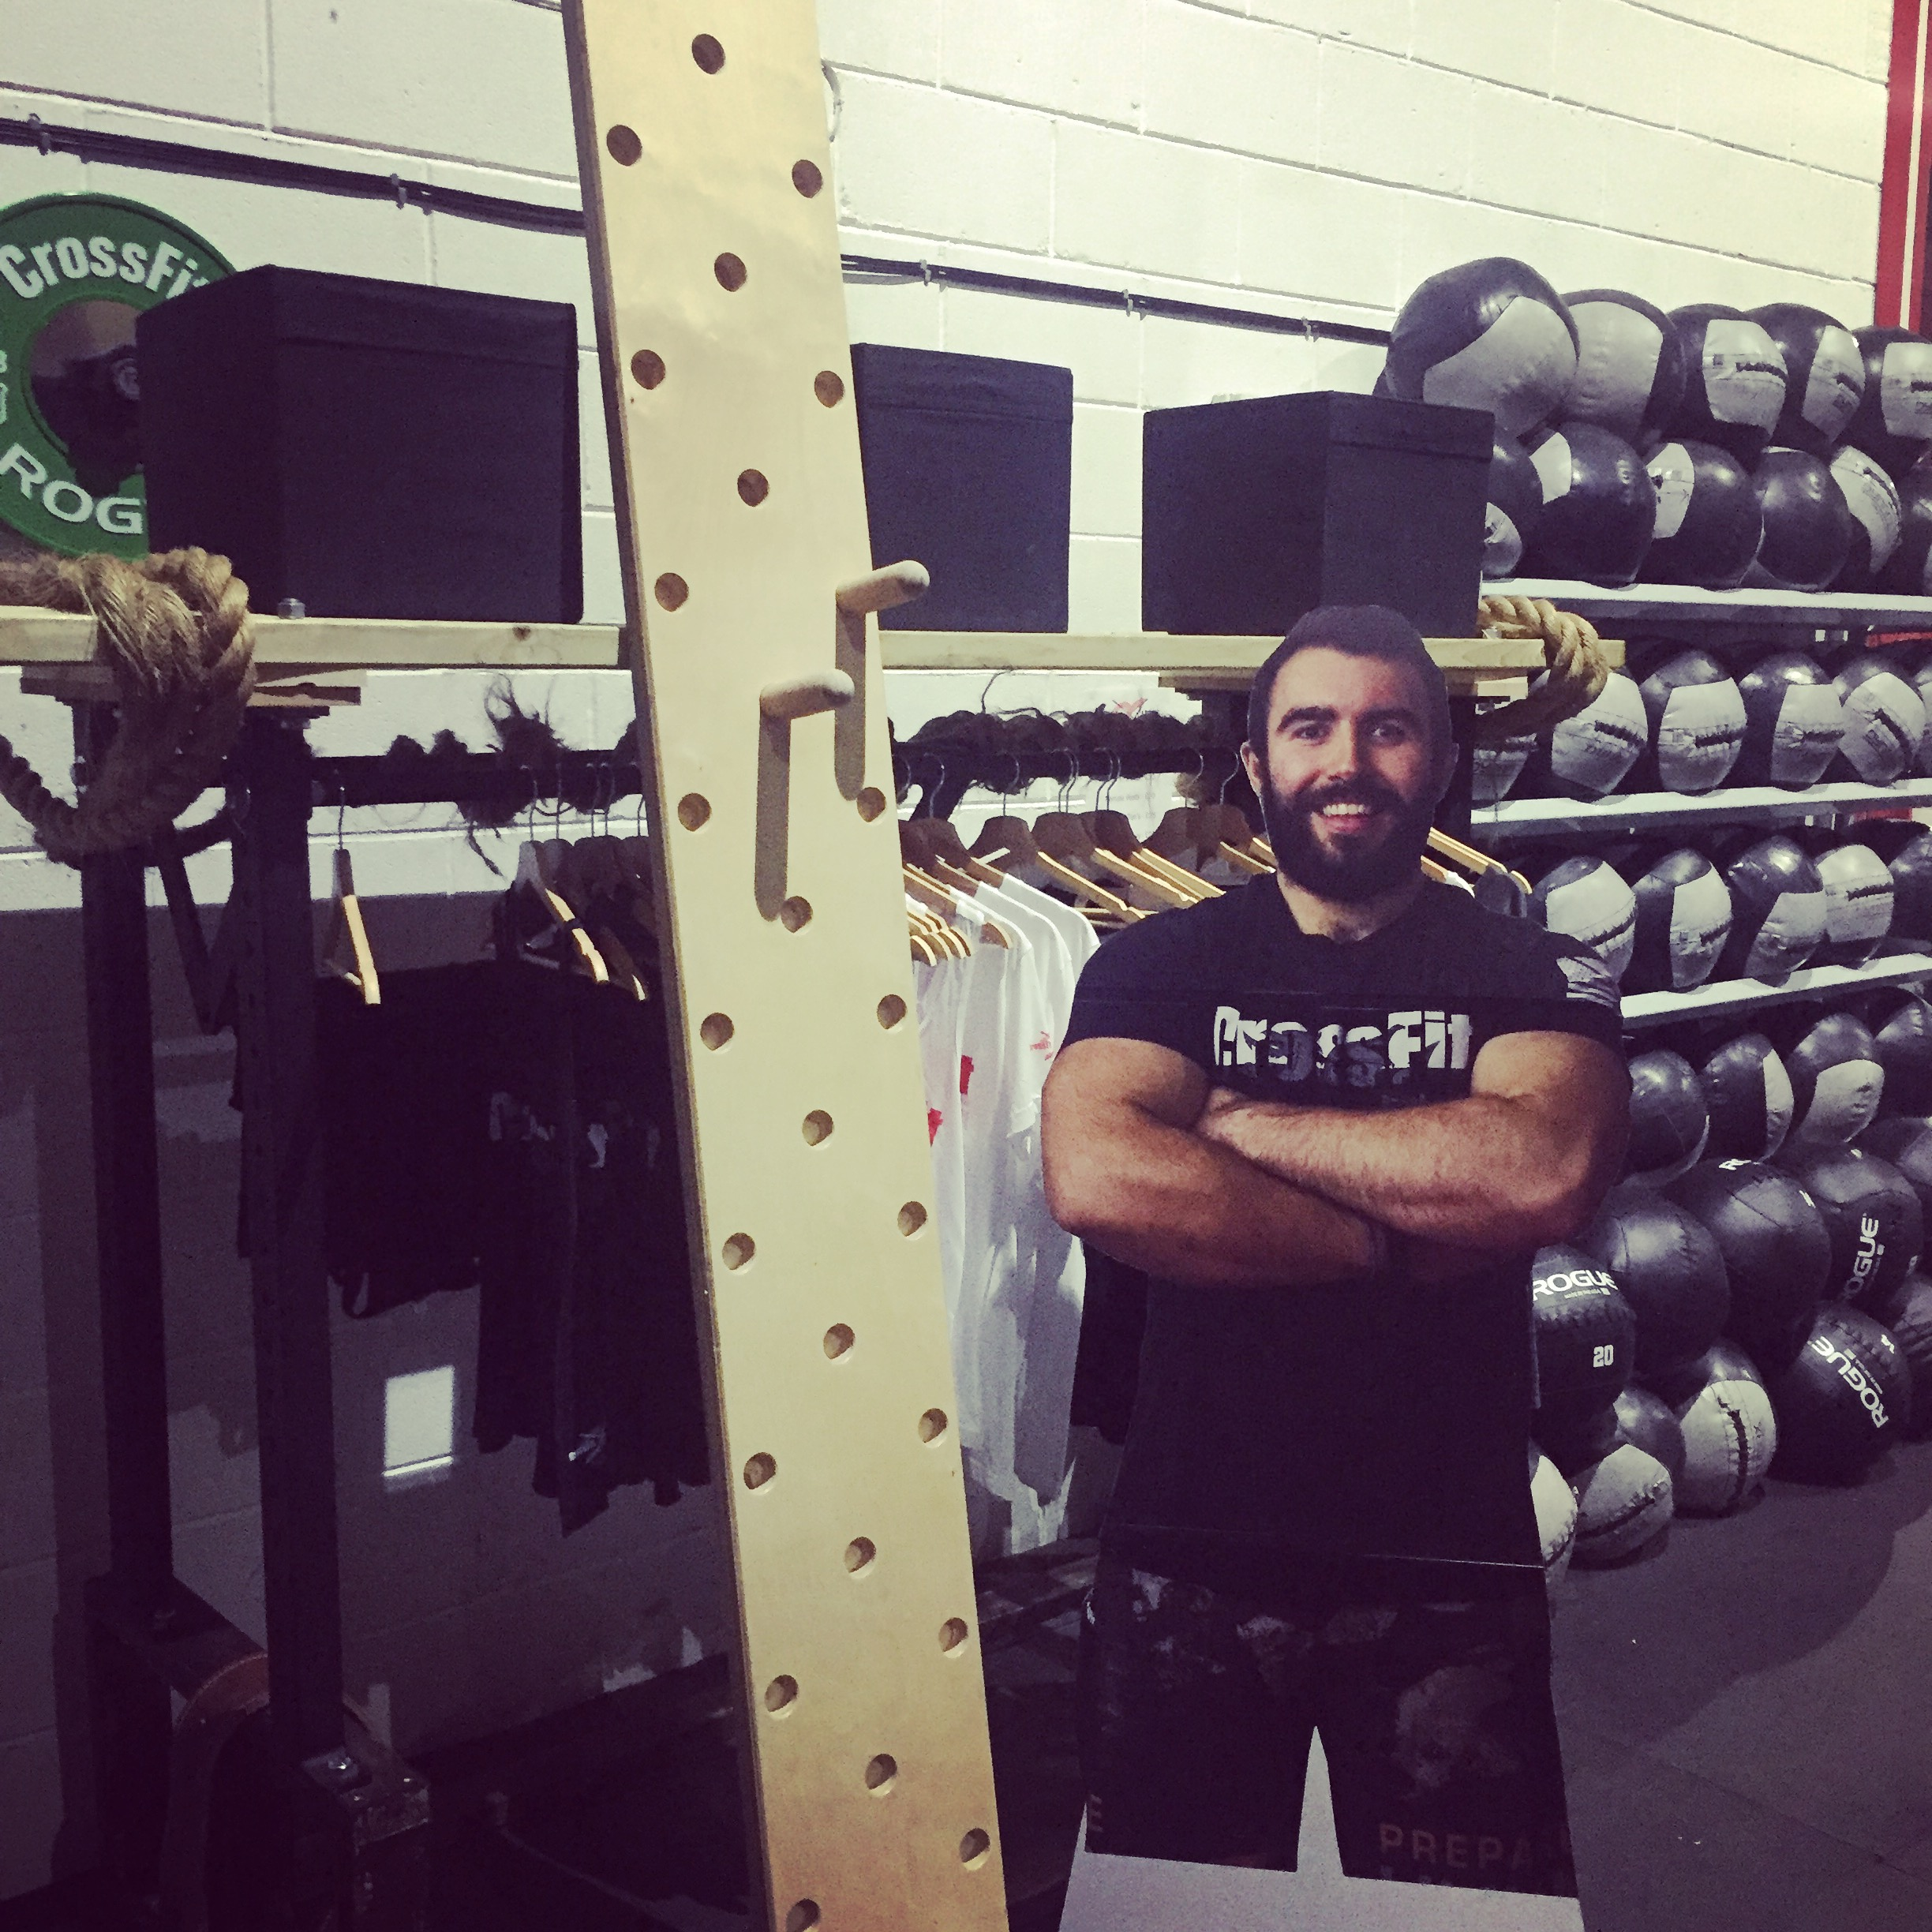 The secret of the bicep girth...photographic enlargement and pegboards!